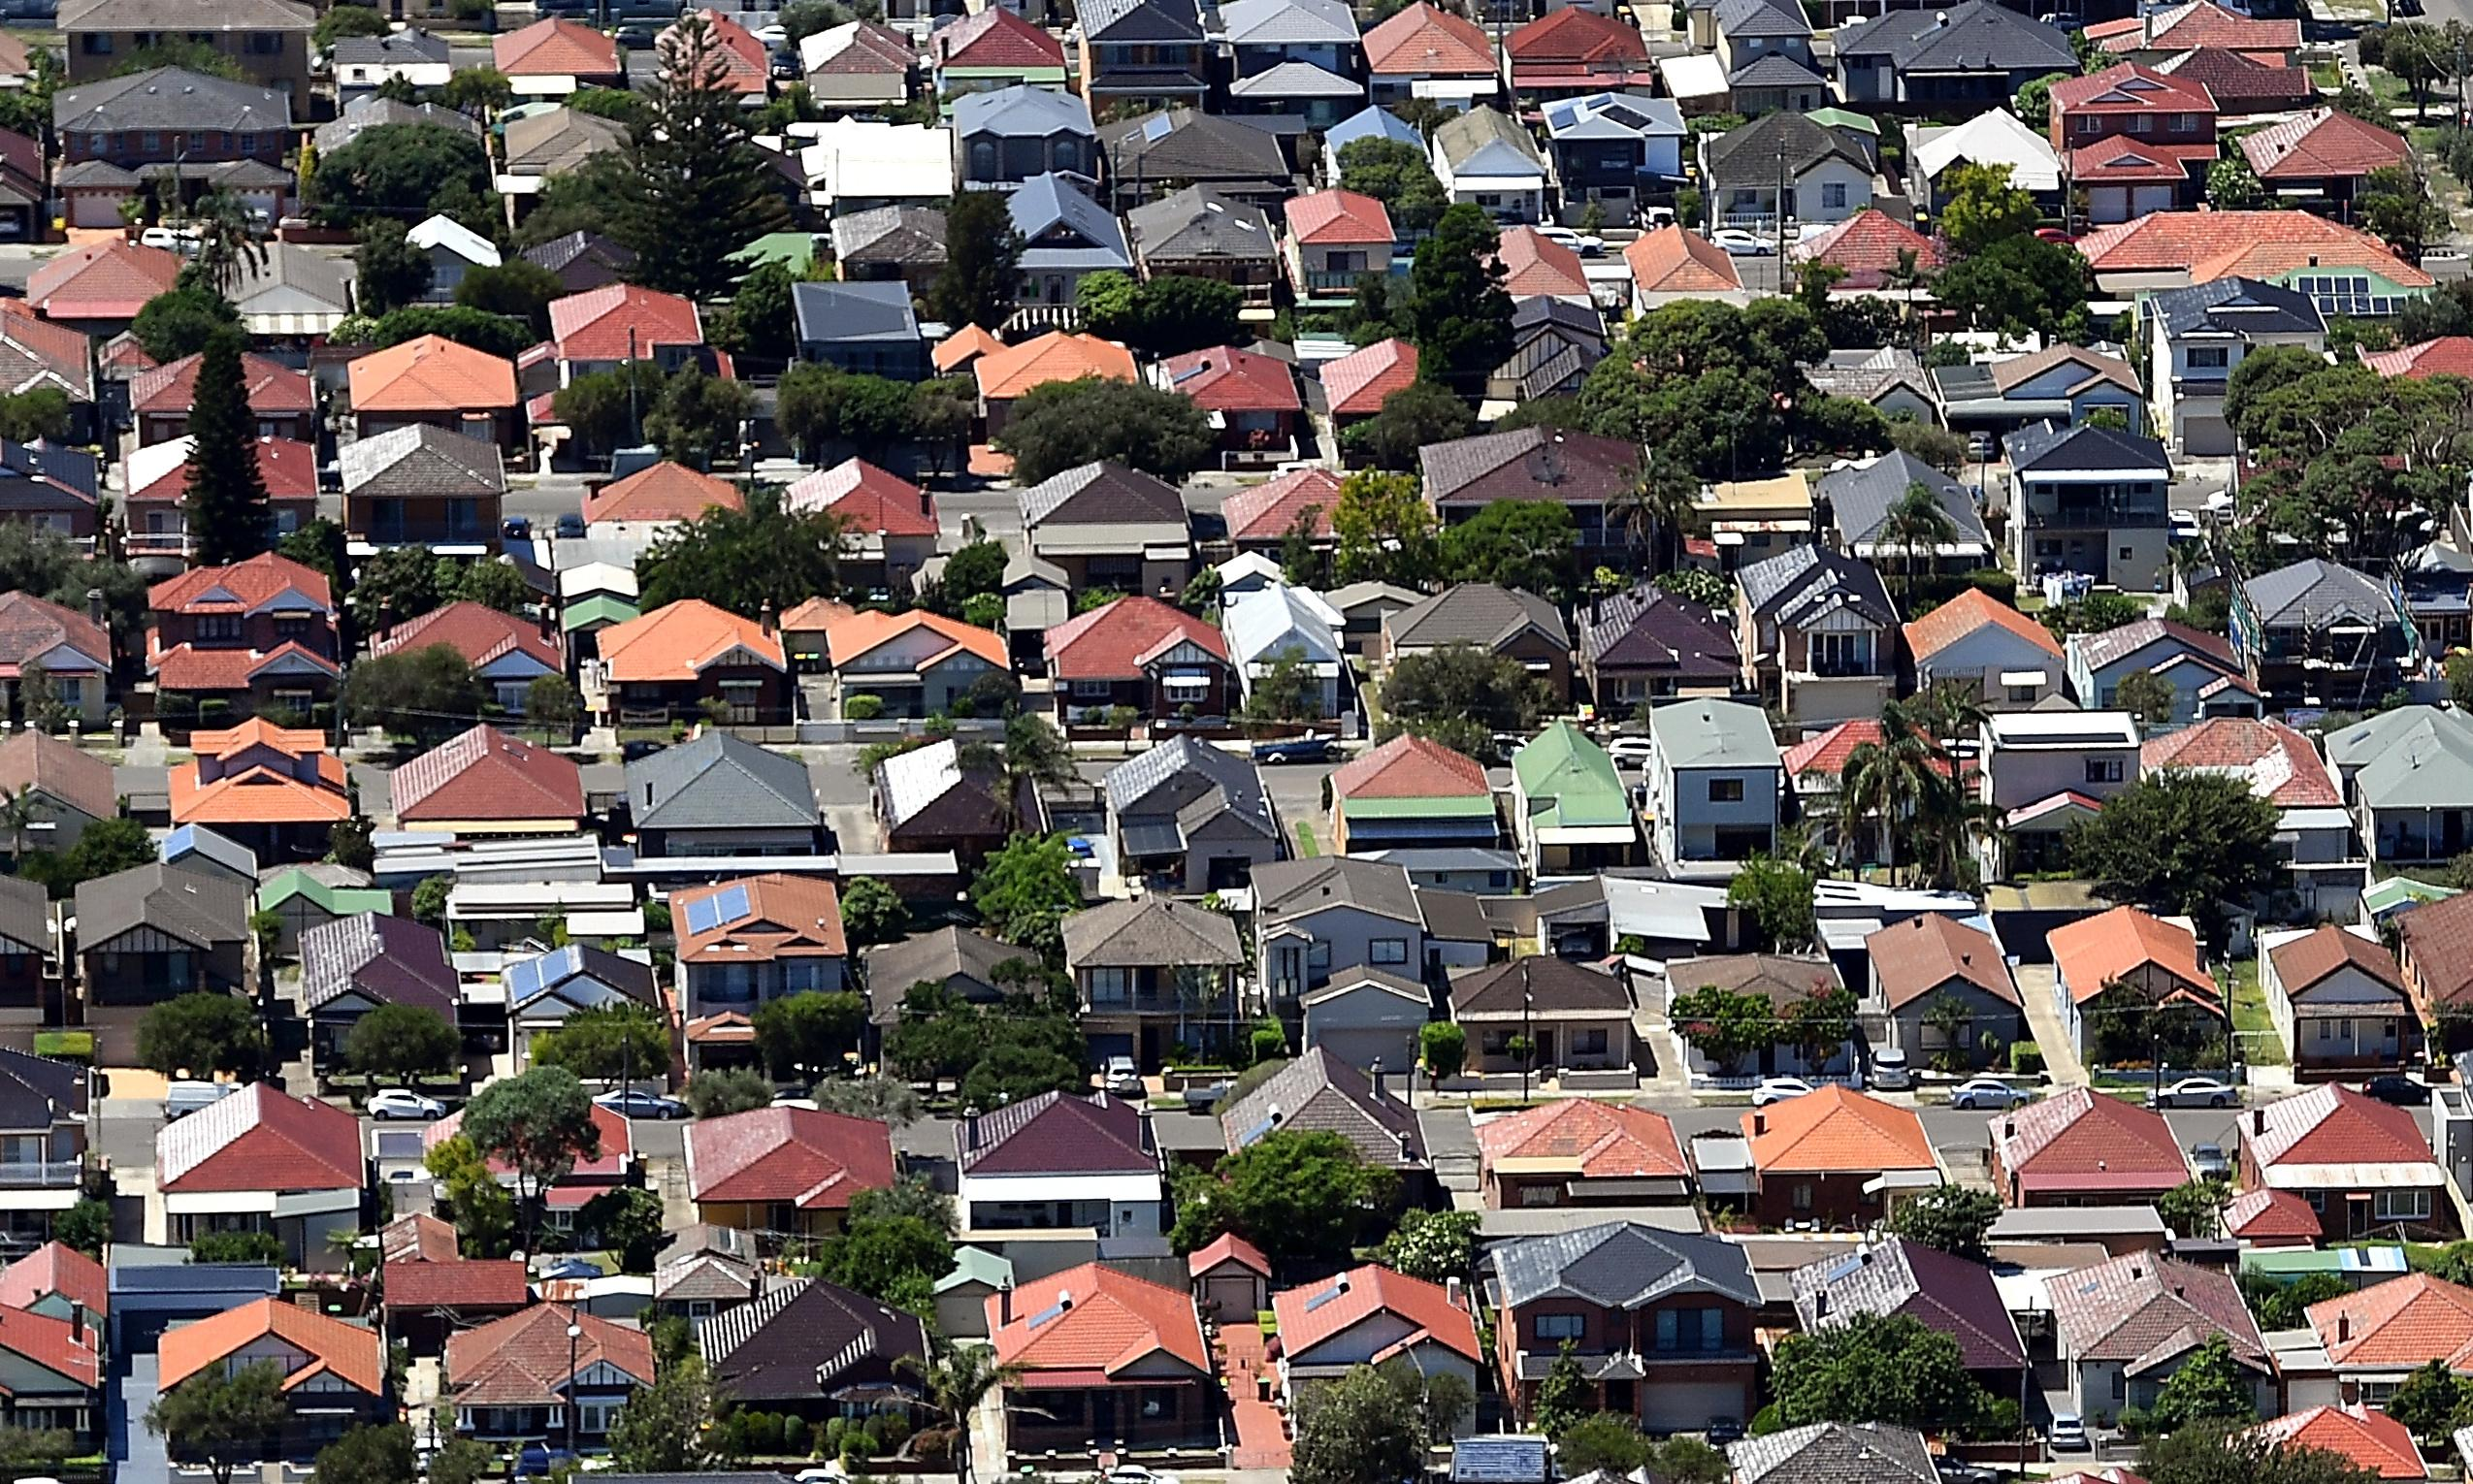 If incomes don't keep up with property prices, we're in danger of another housing bubble